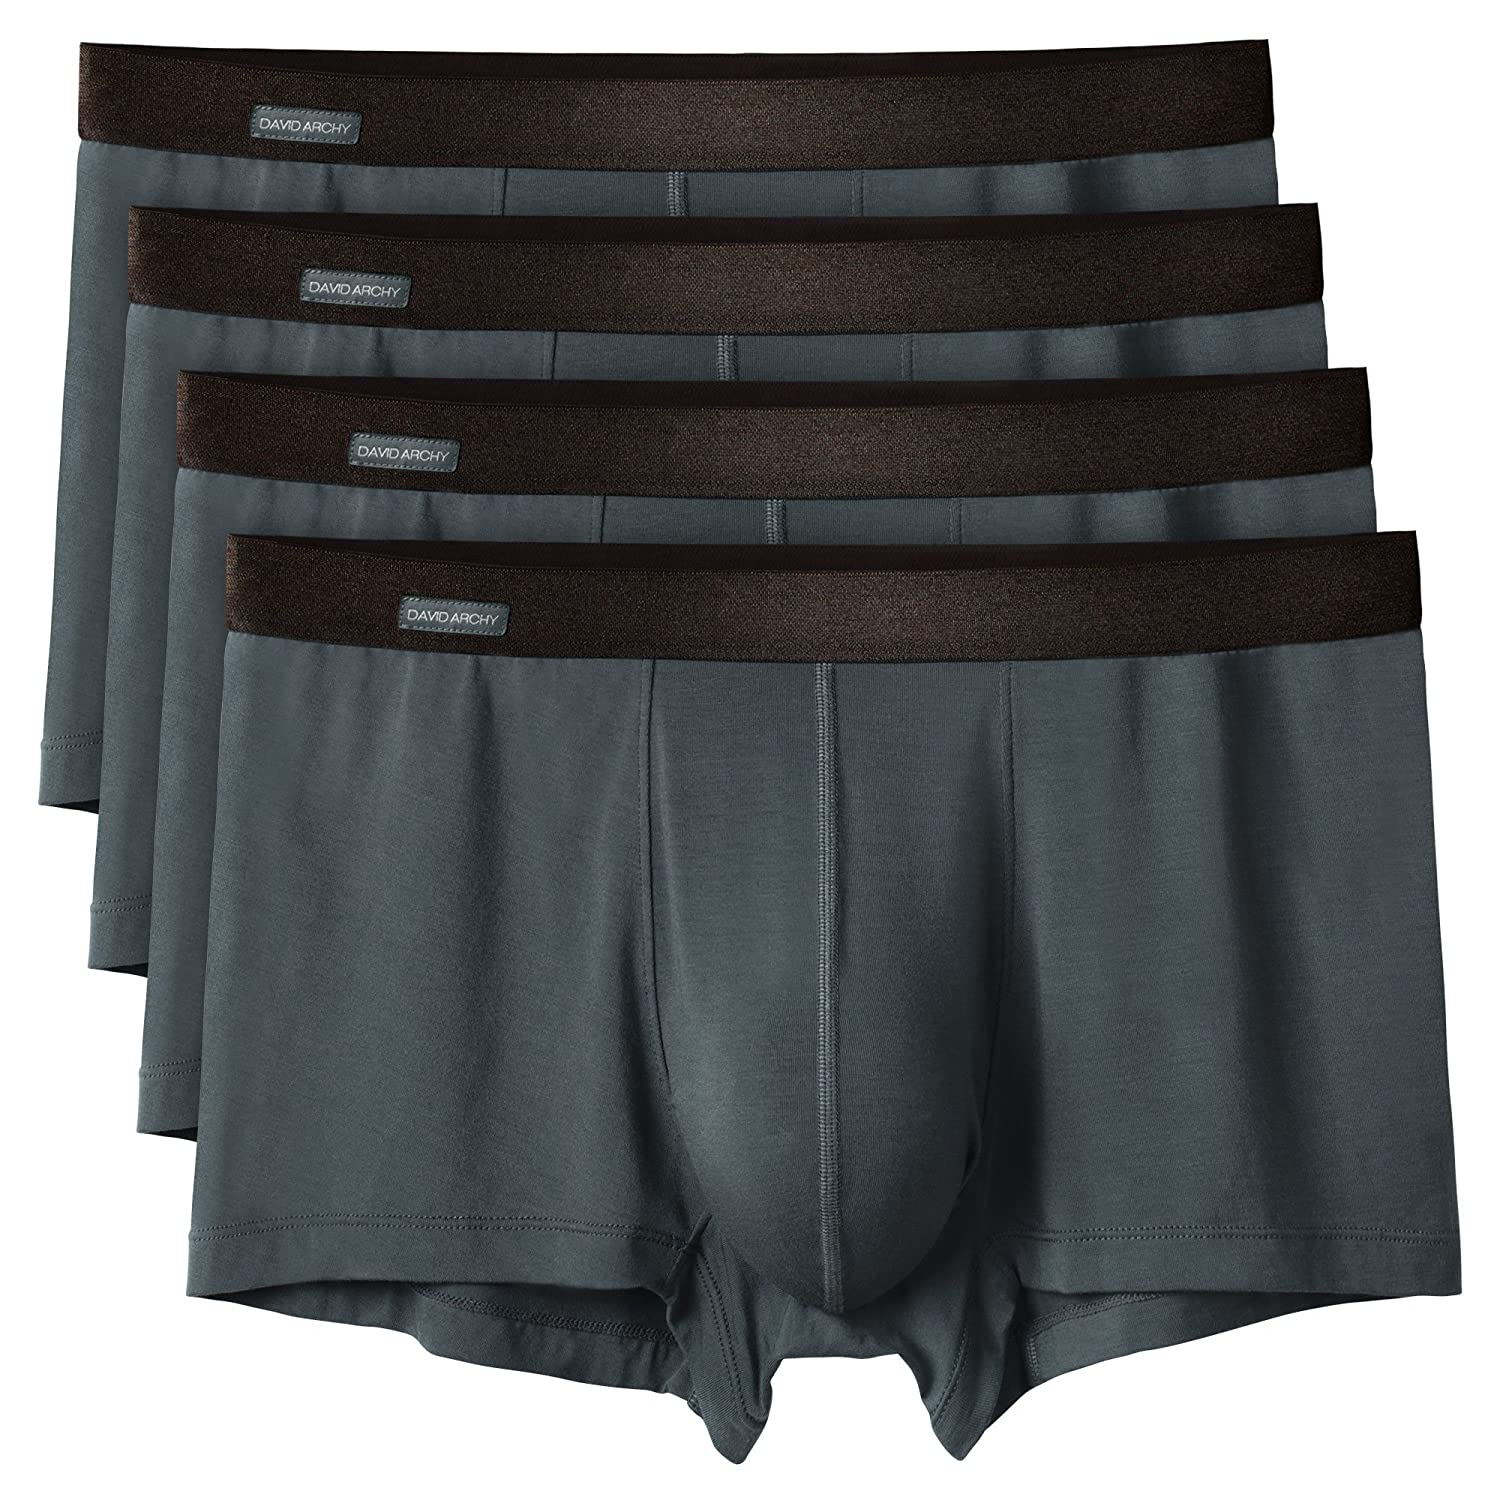 David Archy Men's 4 Pack Basic Solid Ultra Soft Underwear Bamboo Rayon Trunks